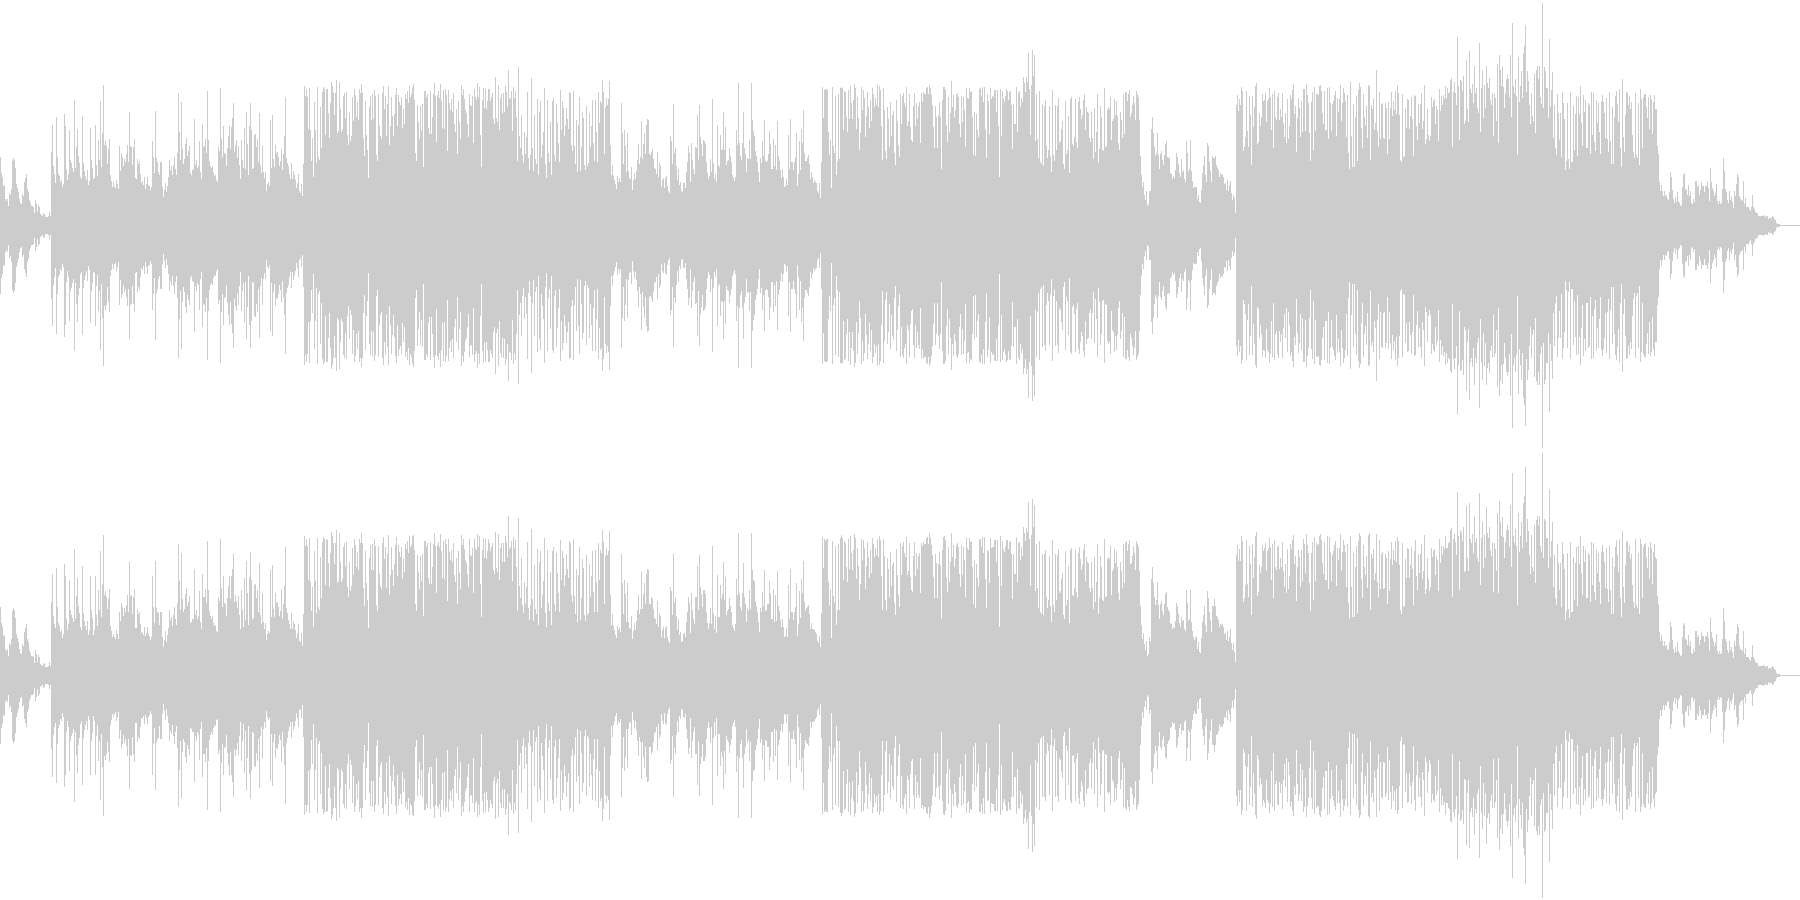 I want to push your back with 90's style rock!'s unreproduced waveform